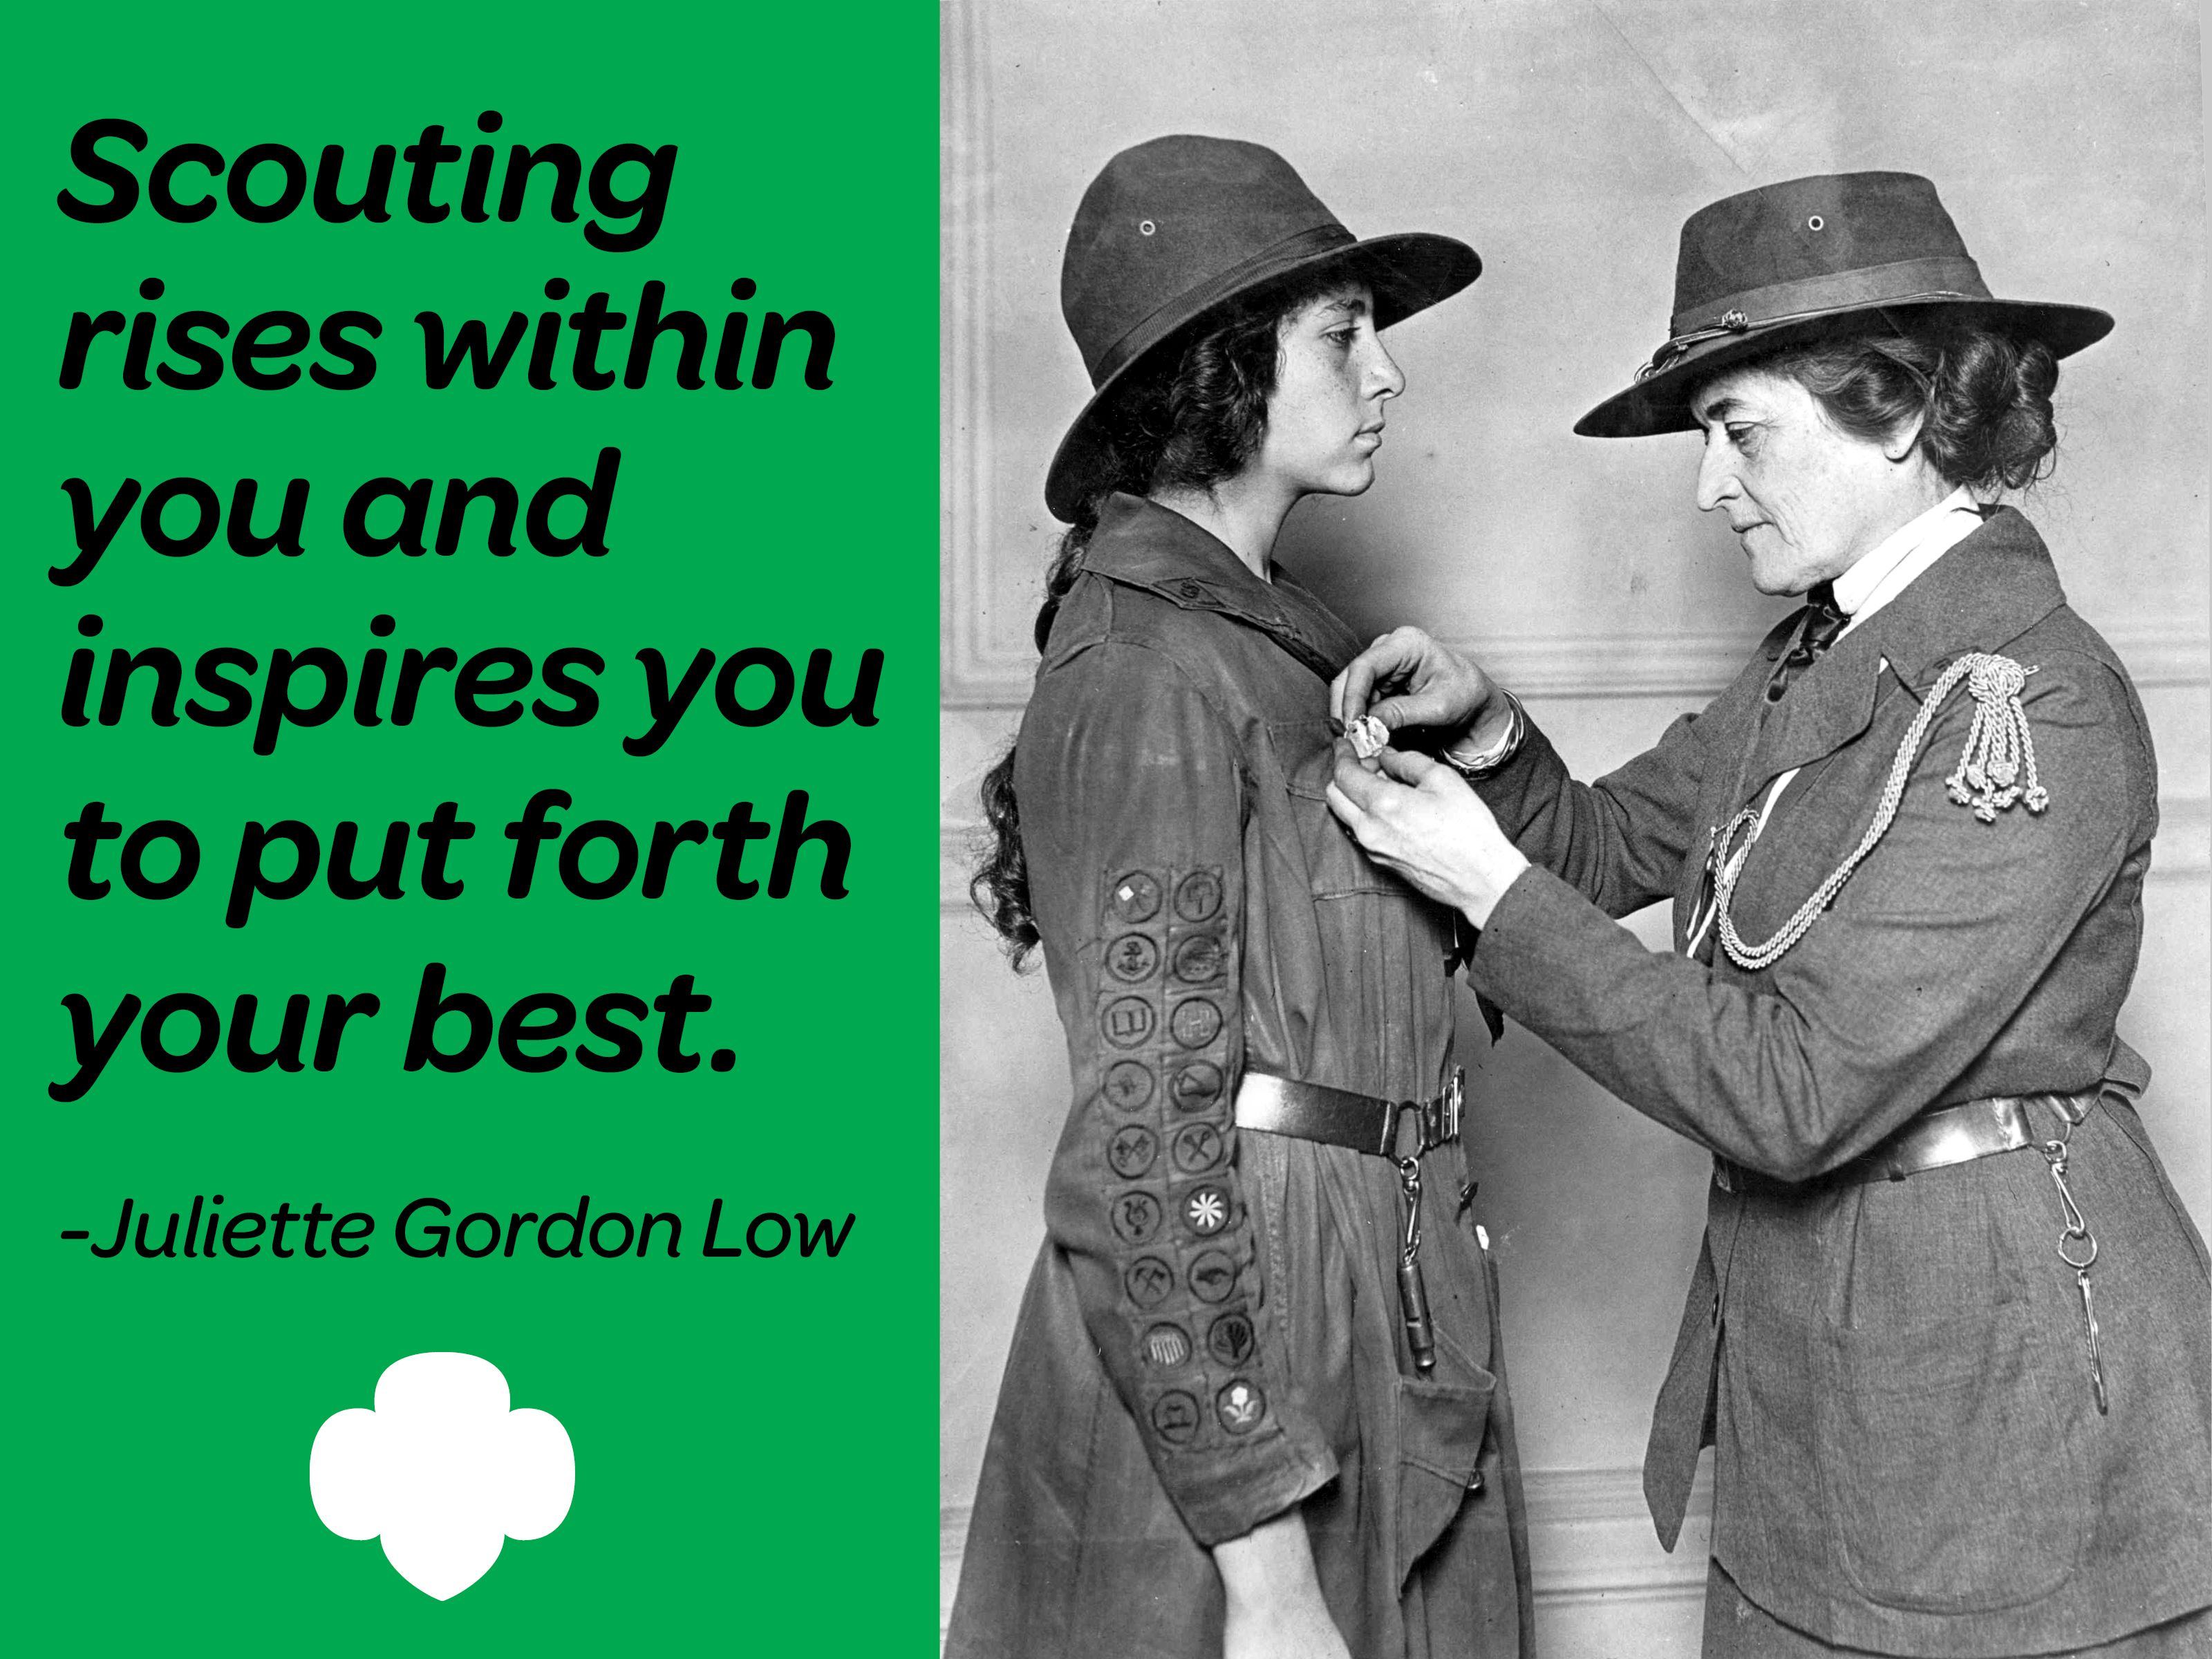 scouting rises in you and inspires you to put forth your best scouting rises in you and inspires you to put forth your best juliette gordon